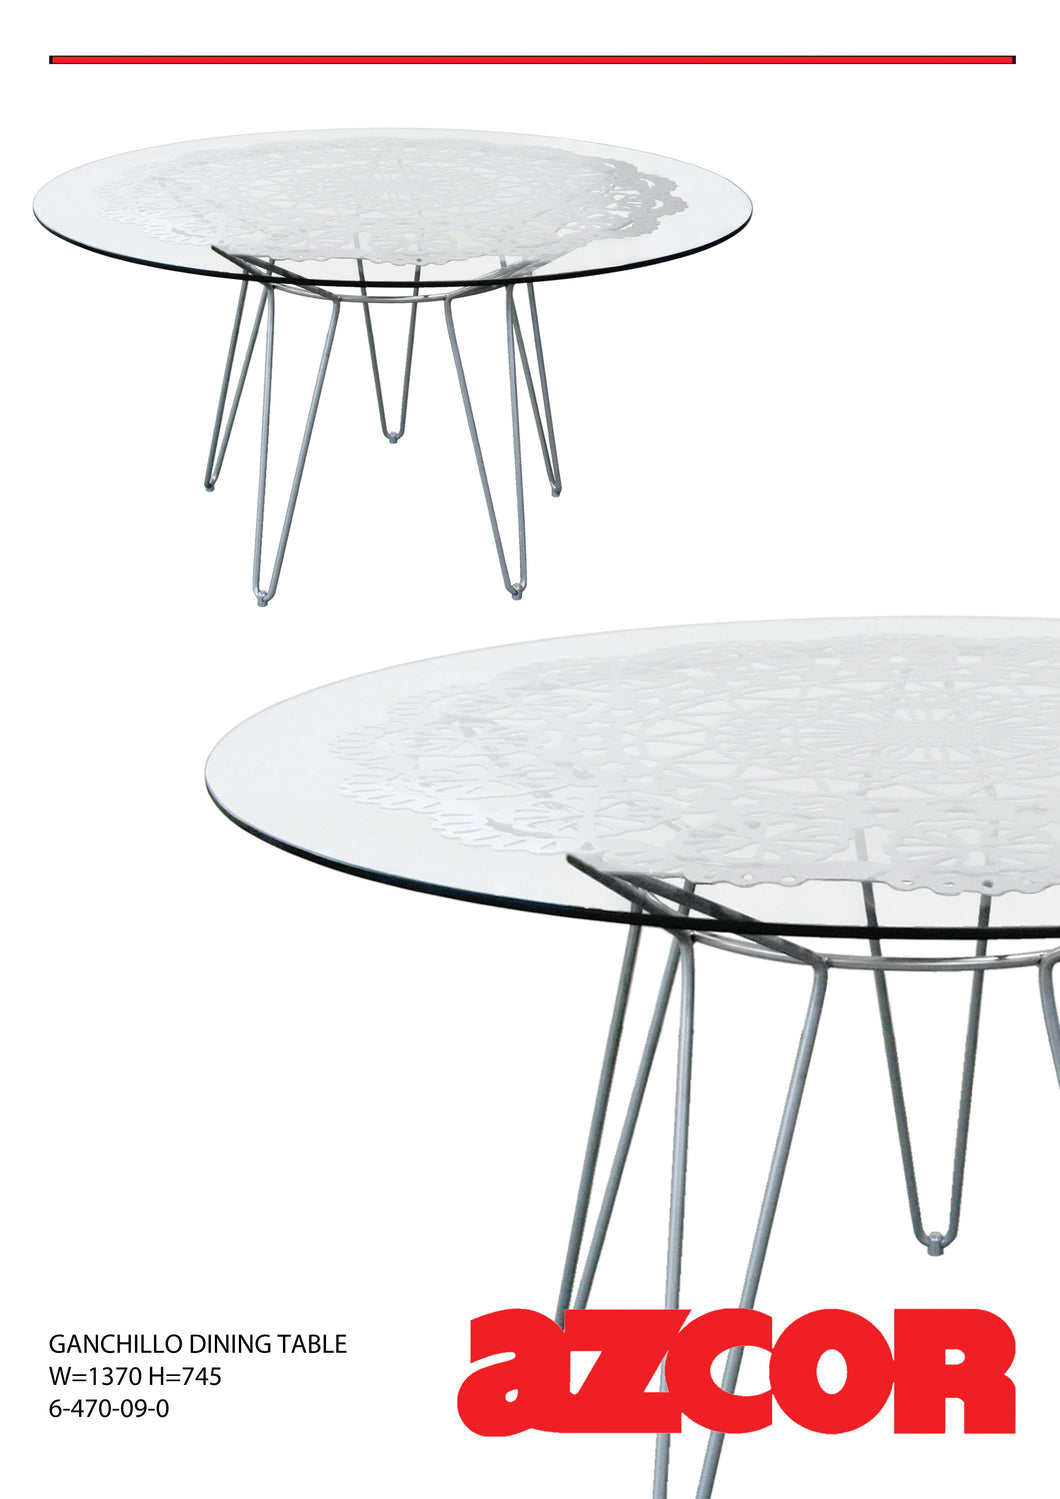 Ganchillo Dining Table